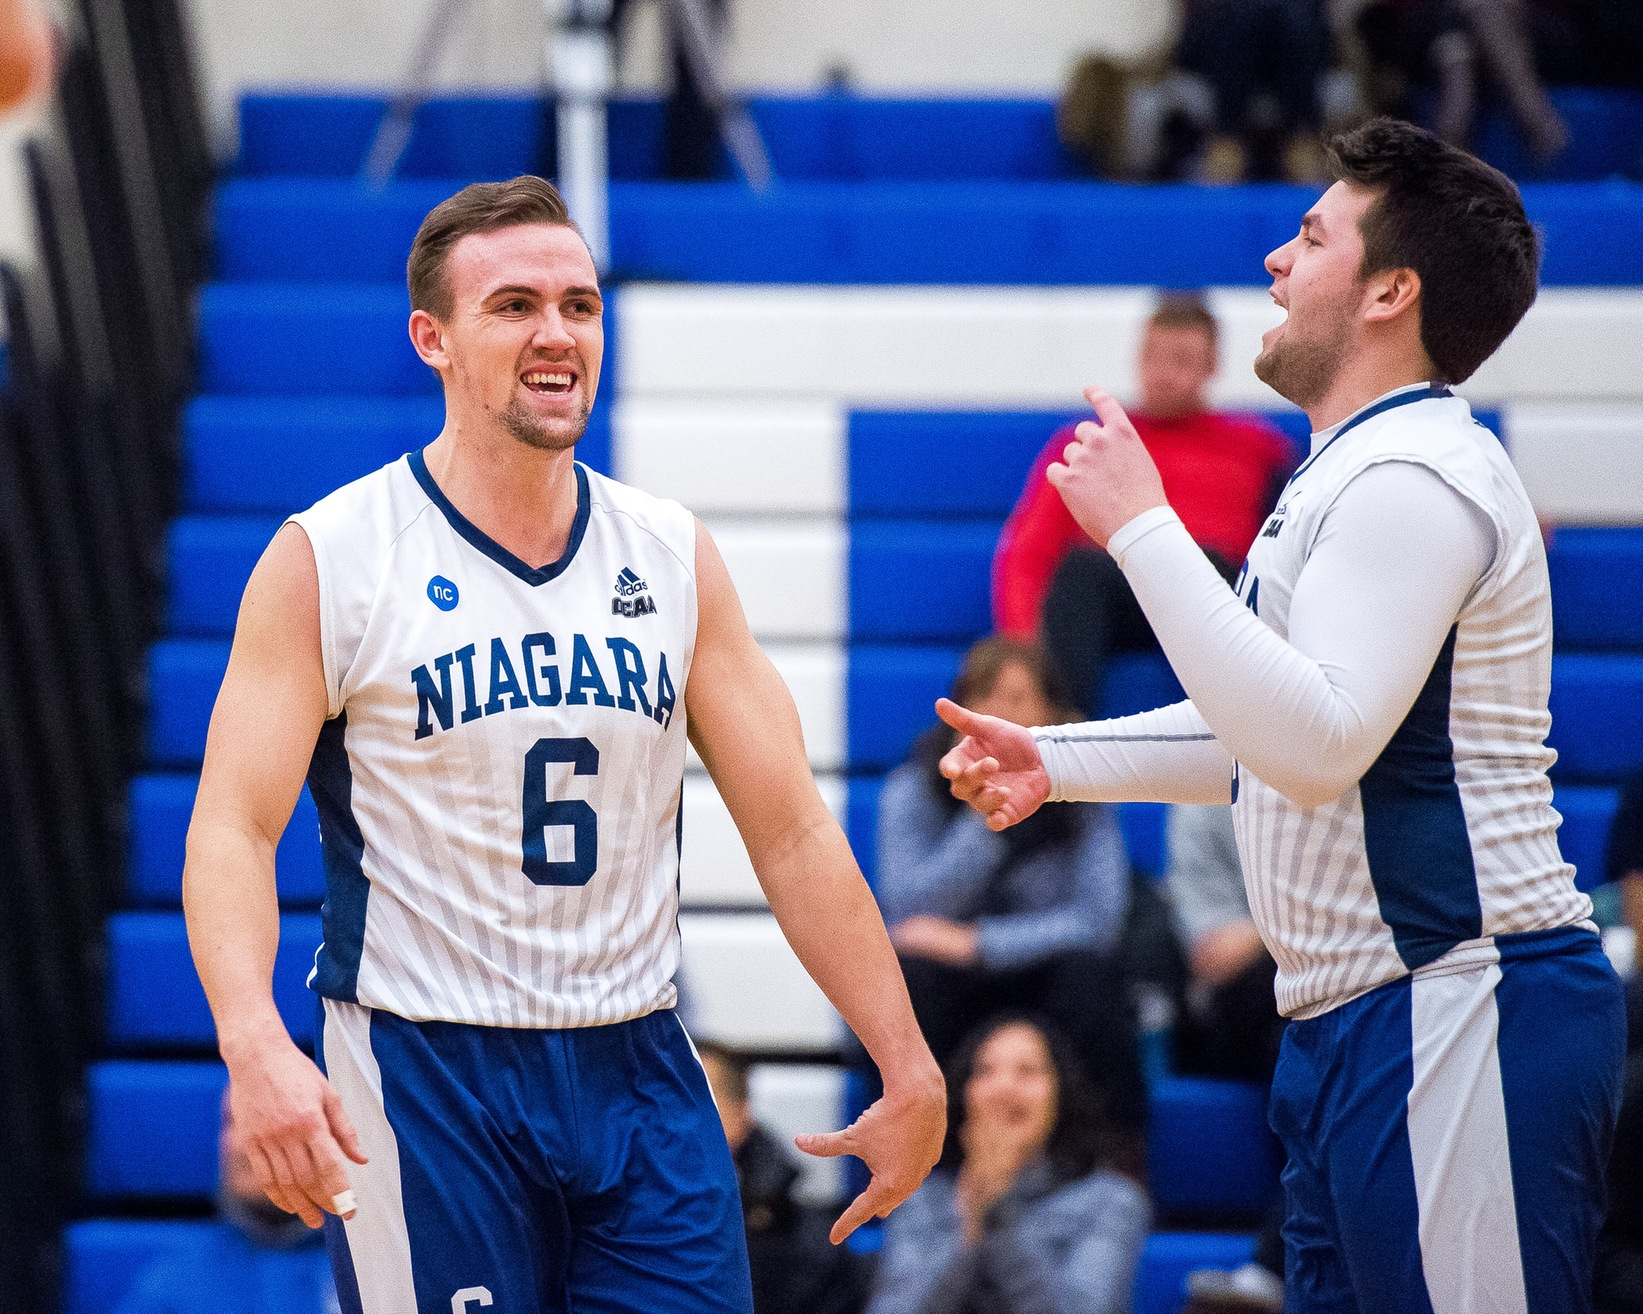 PREVIEW: Knights to open OCAA Championships against hosting Grizzlies